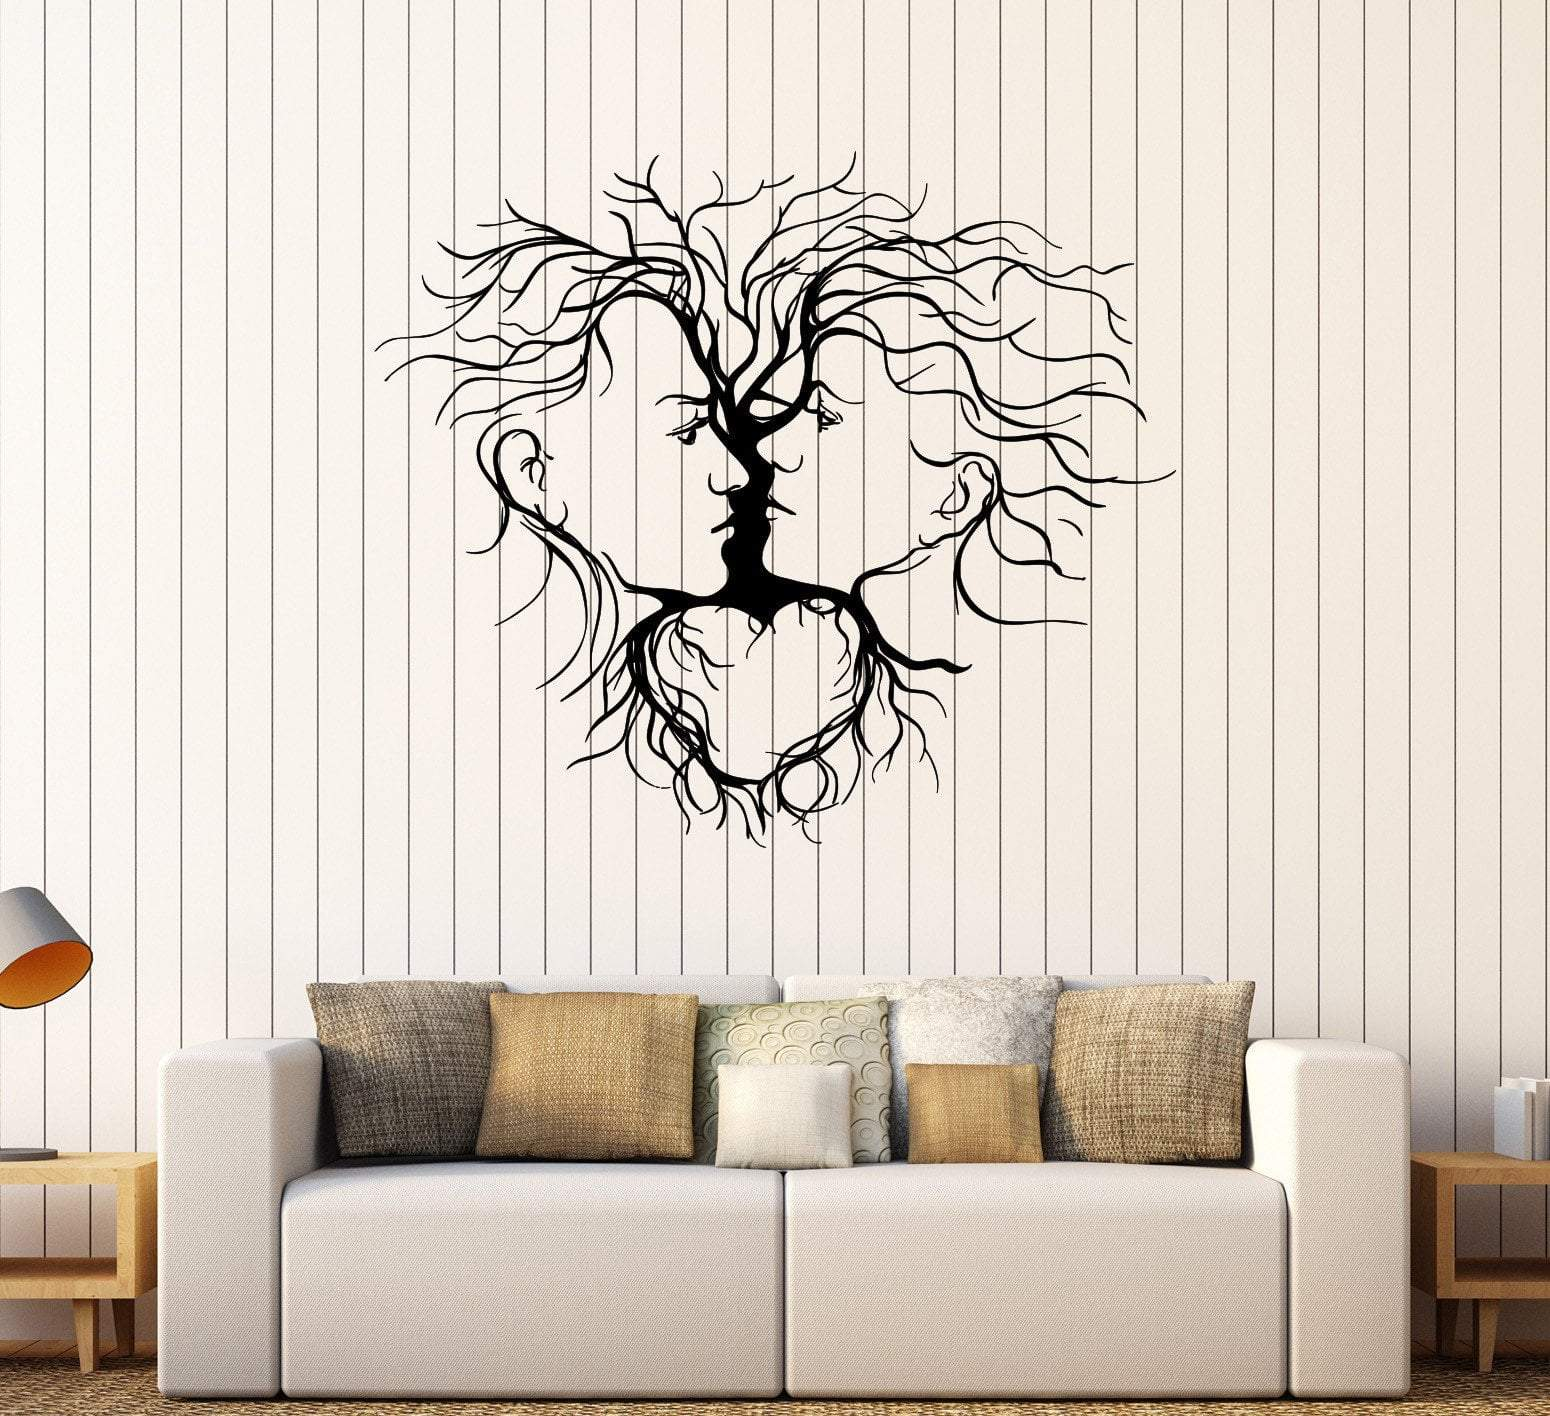 Laser Cut Loving Couple Abstract Tree Wall Decor DXF File